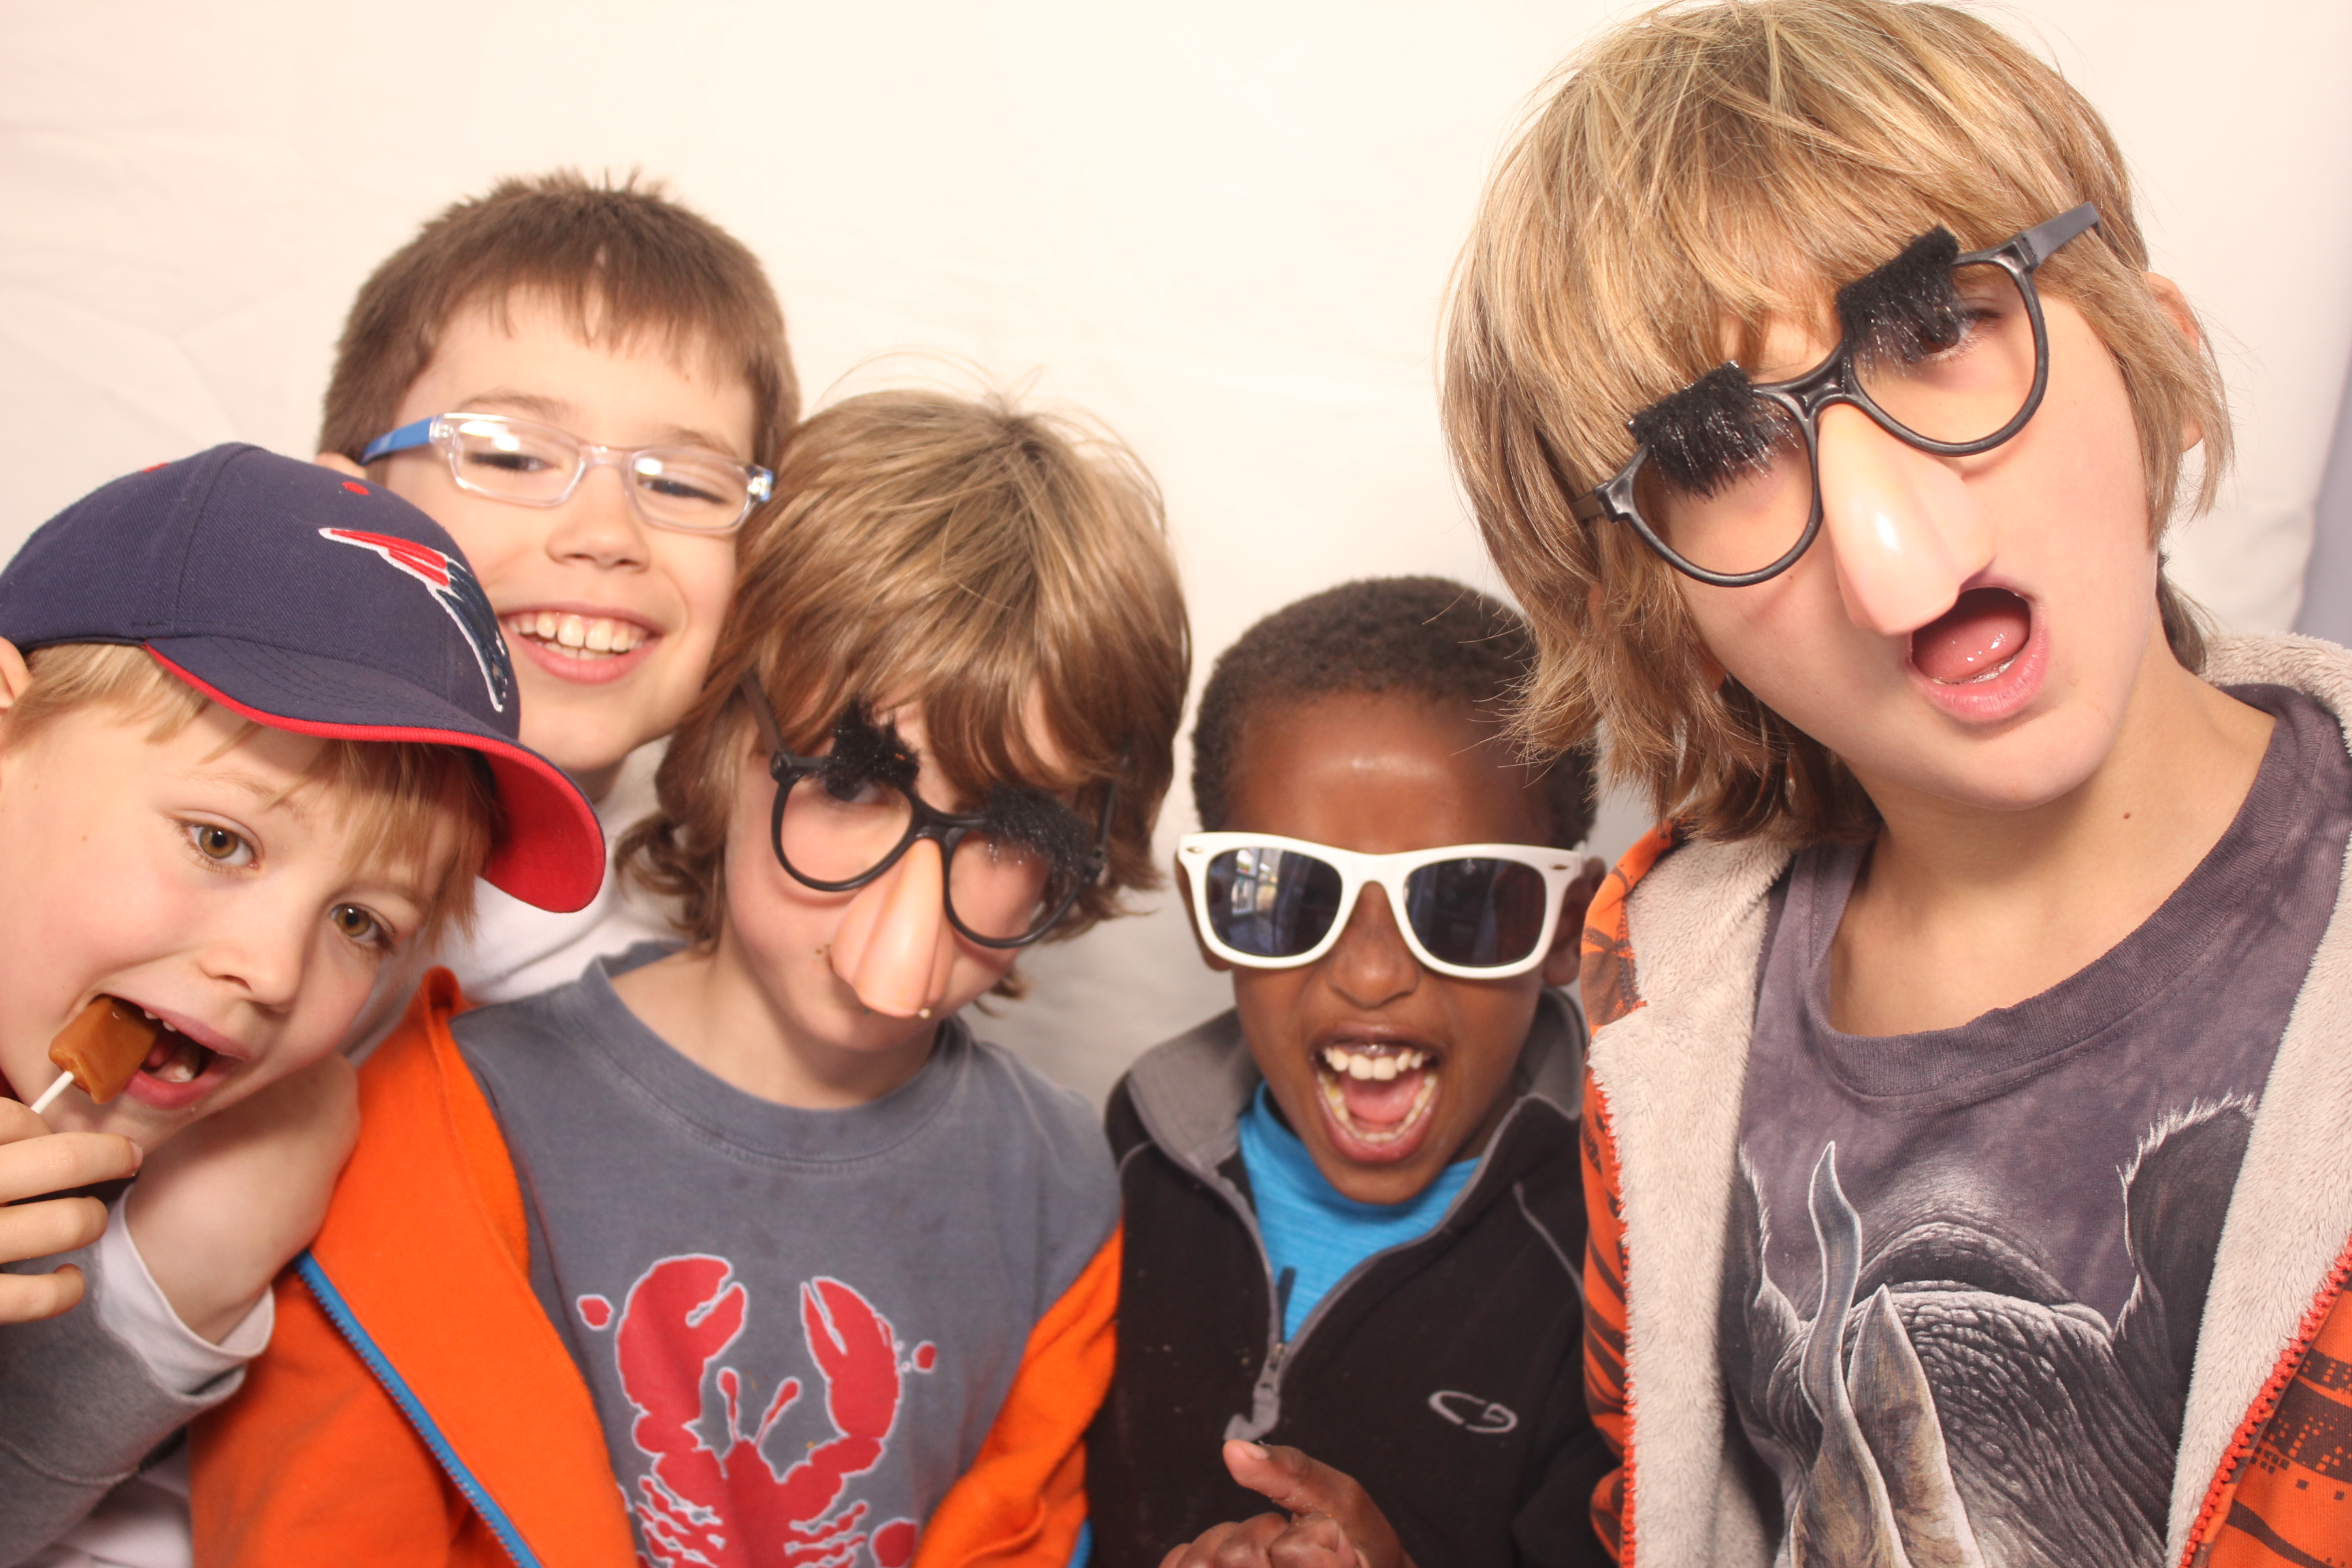 Sparhawk students wearing glasses and smiling in a photo booth.